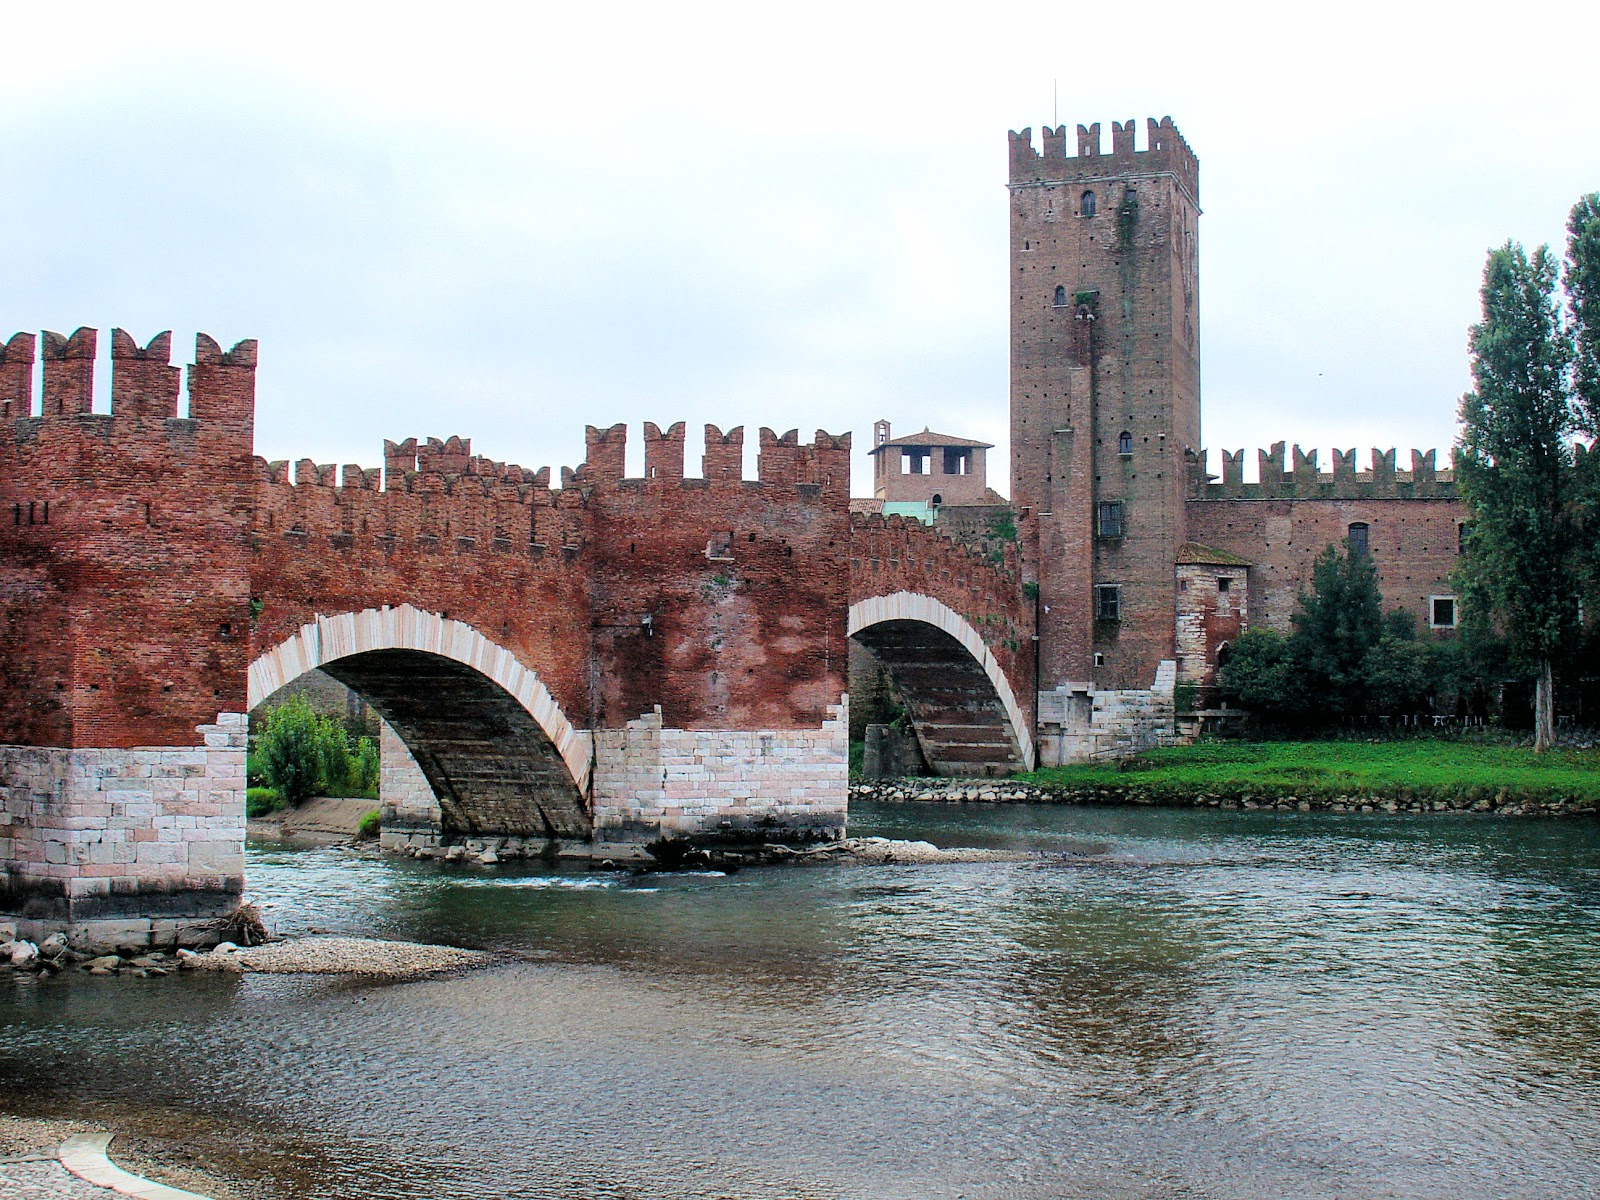 The Ponte Scaligeri leads the way to Castelvecchio in Verona, Italy.